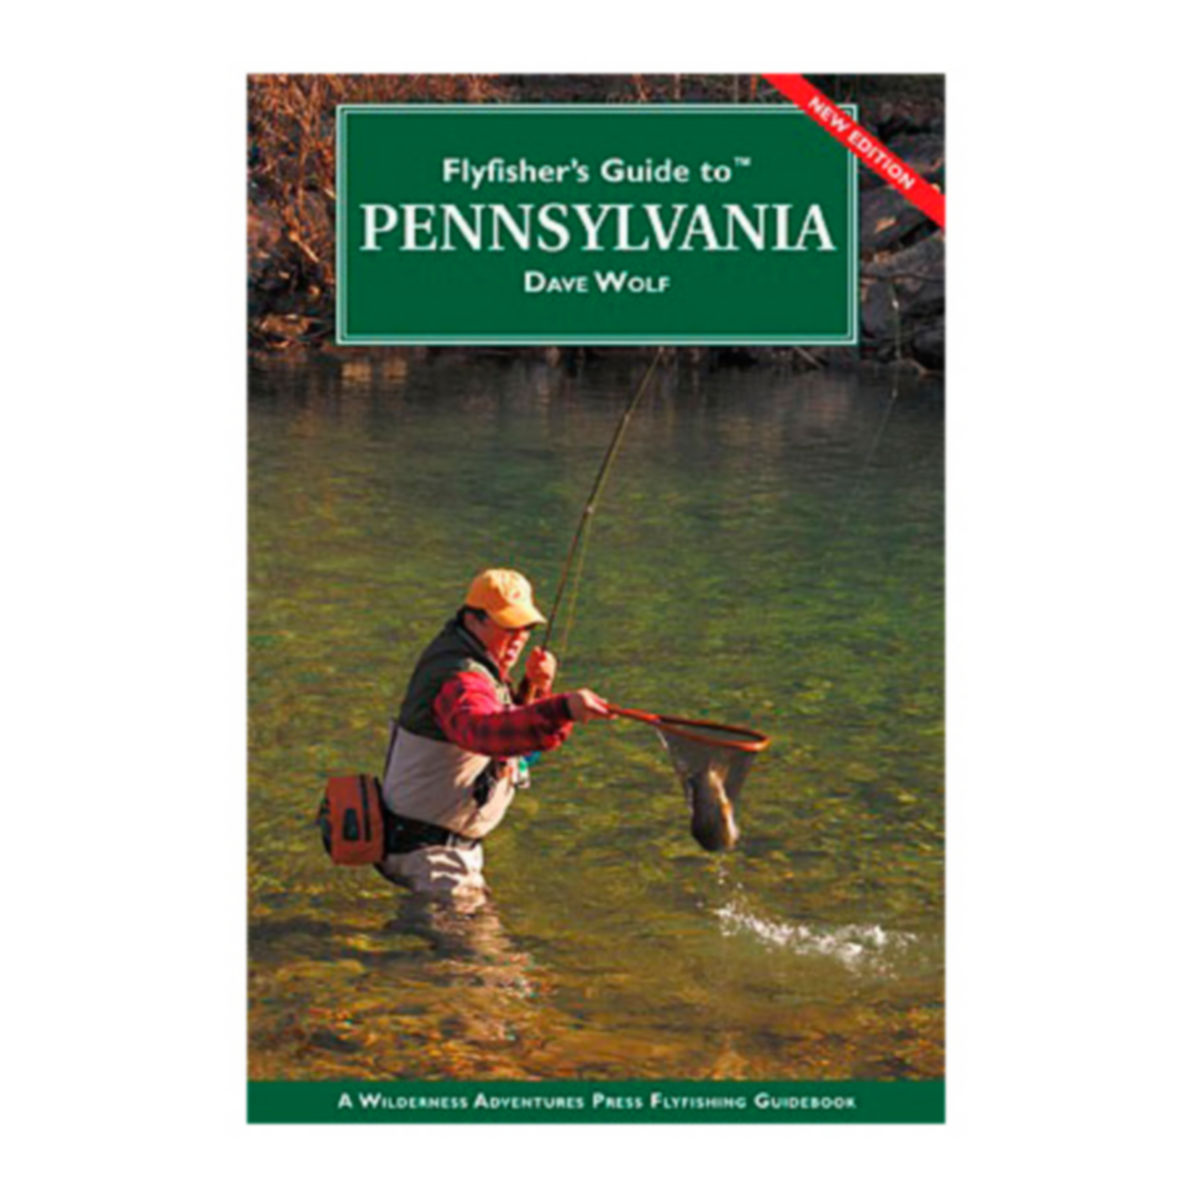 Flyfisher's Guide to Pennsylvania - image number 0